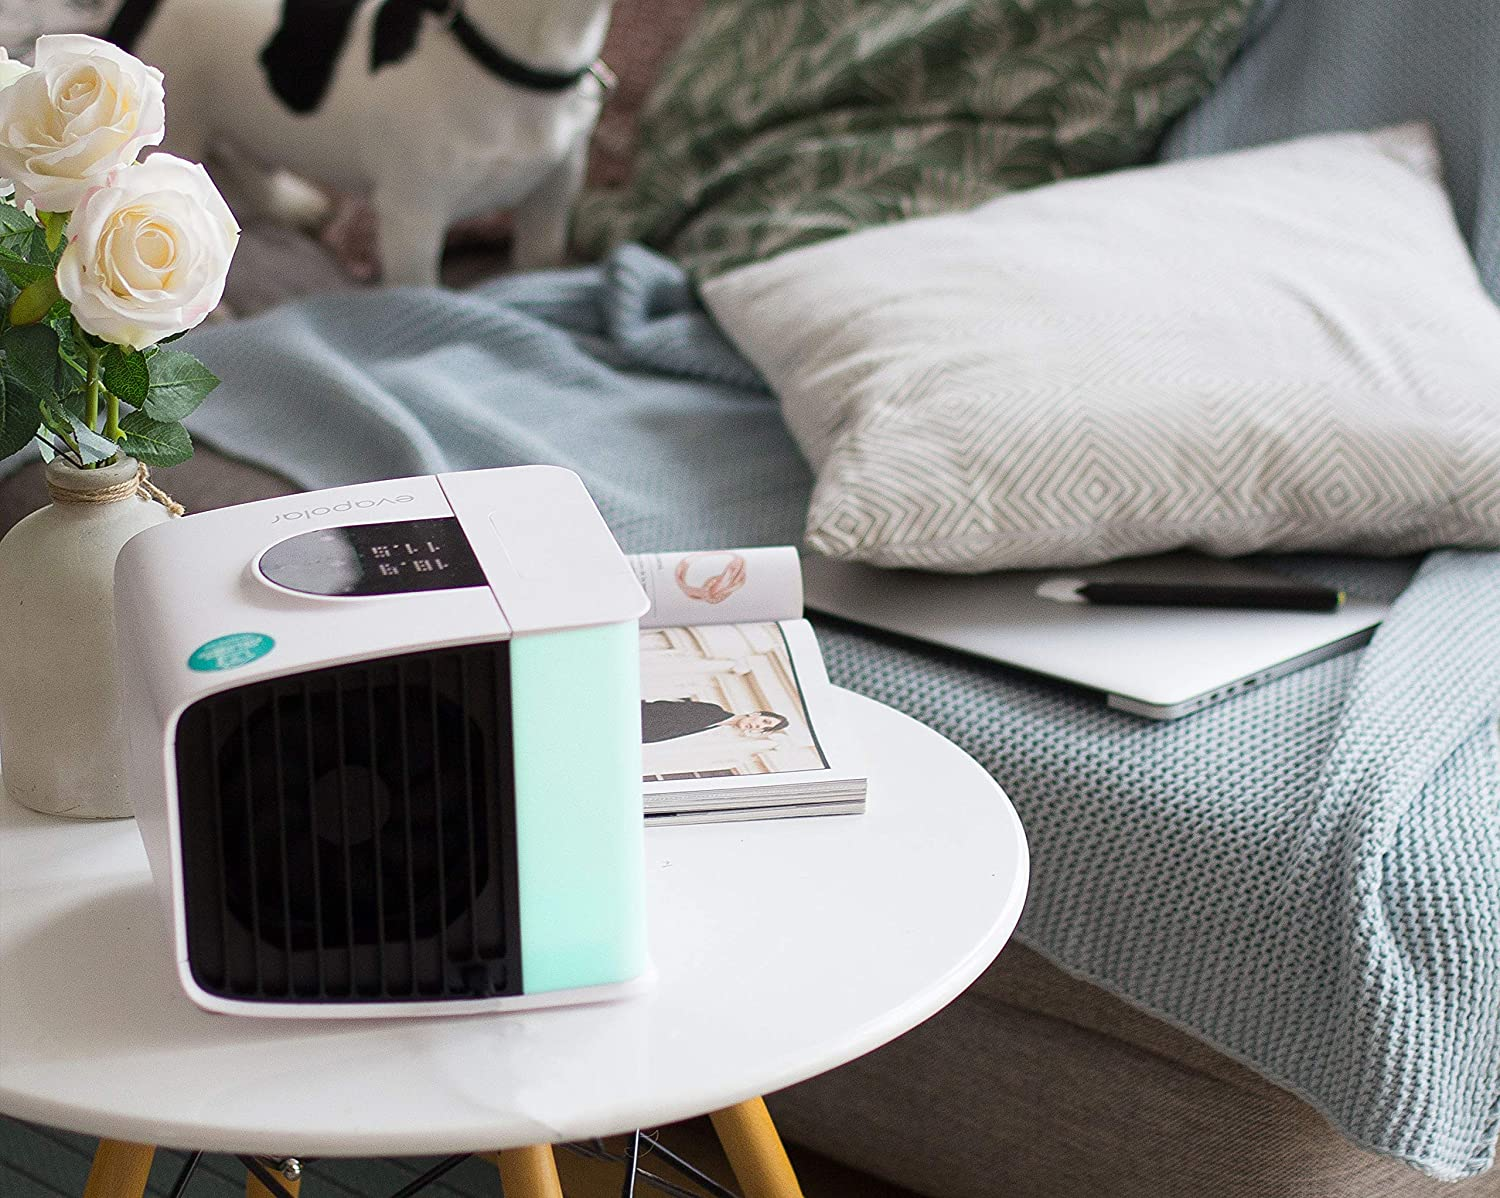 Portable Air Conditioner EV-3000 with Alexa Support Stormy Grey Purifier and Humidifier Evapolar EvaSMART Personal Evaporative Air Cooler